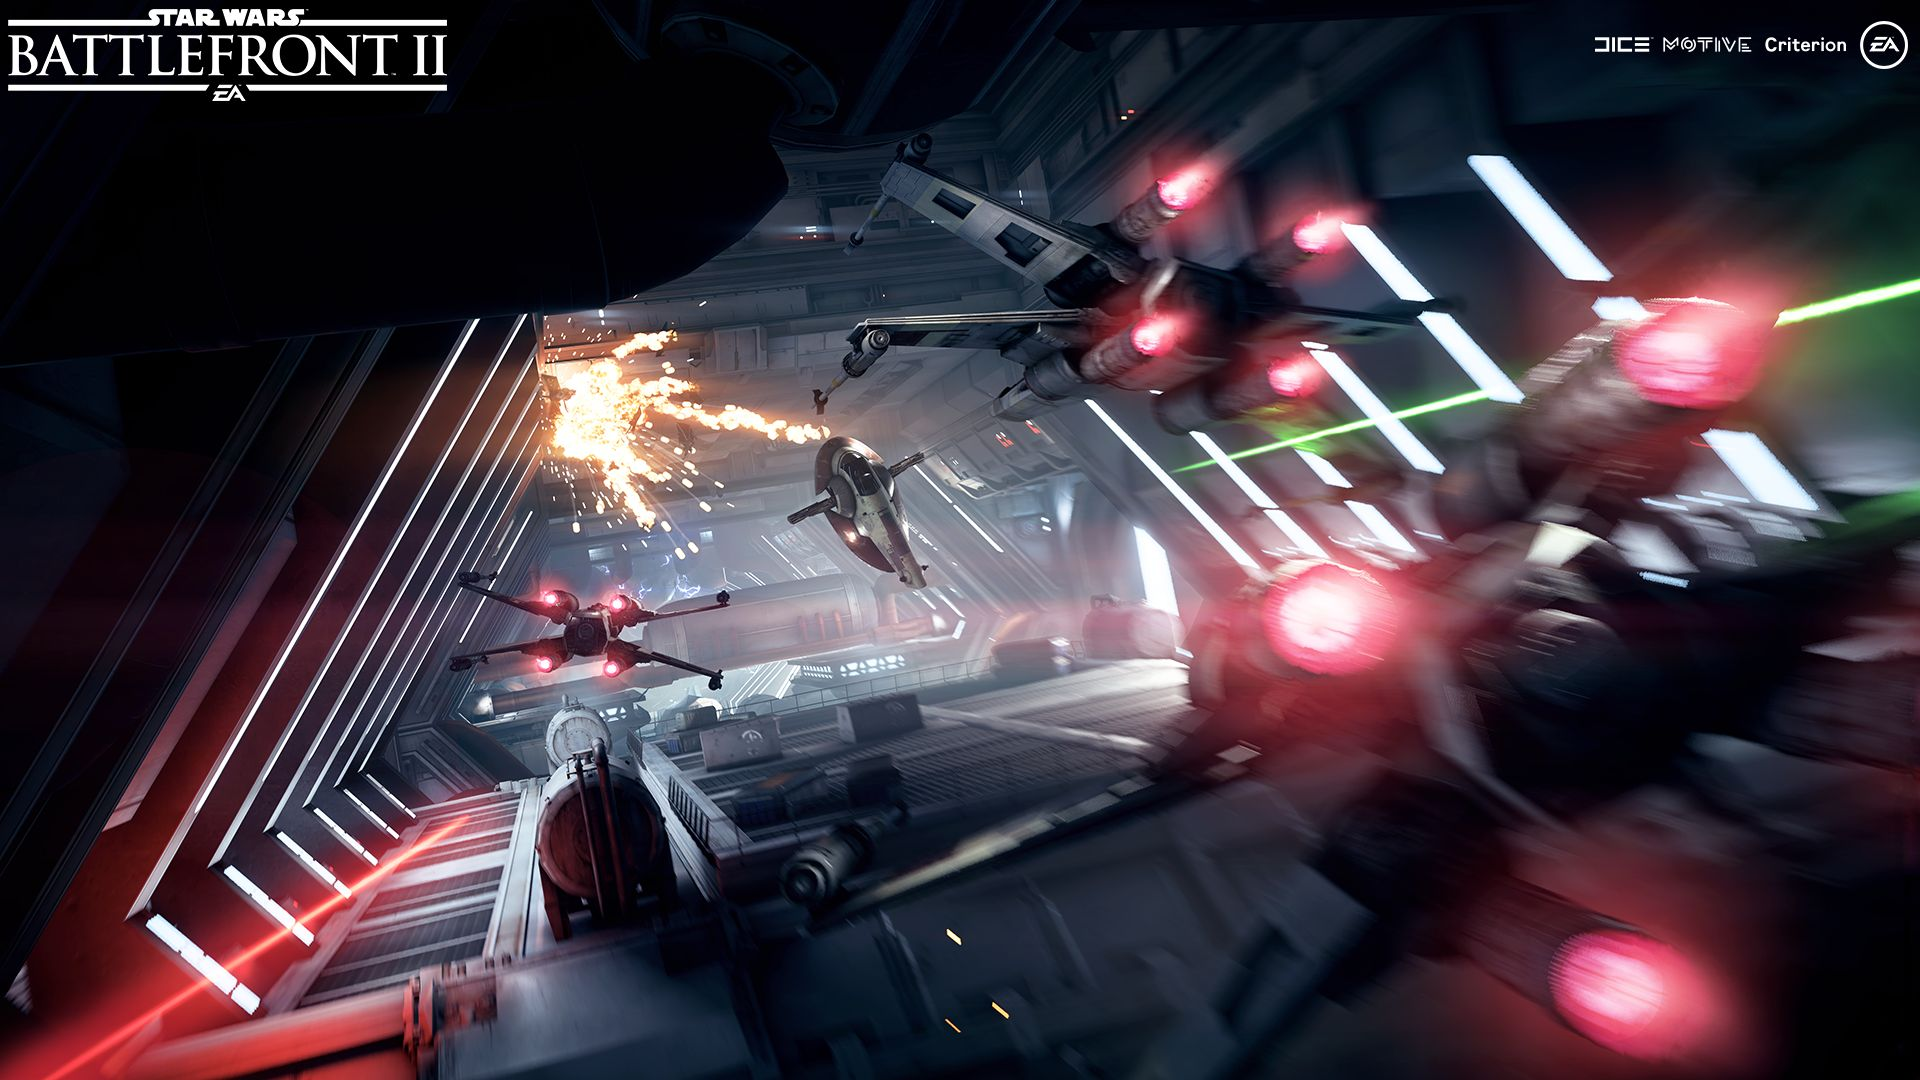 Star Wars Battlefront 2 Preview The Meat Of 2s Multiplayer Comes In Form Galactic Assault These Vast 20 Versus Matches Pit Colossal